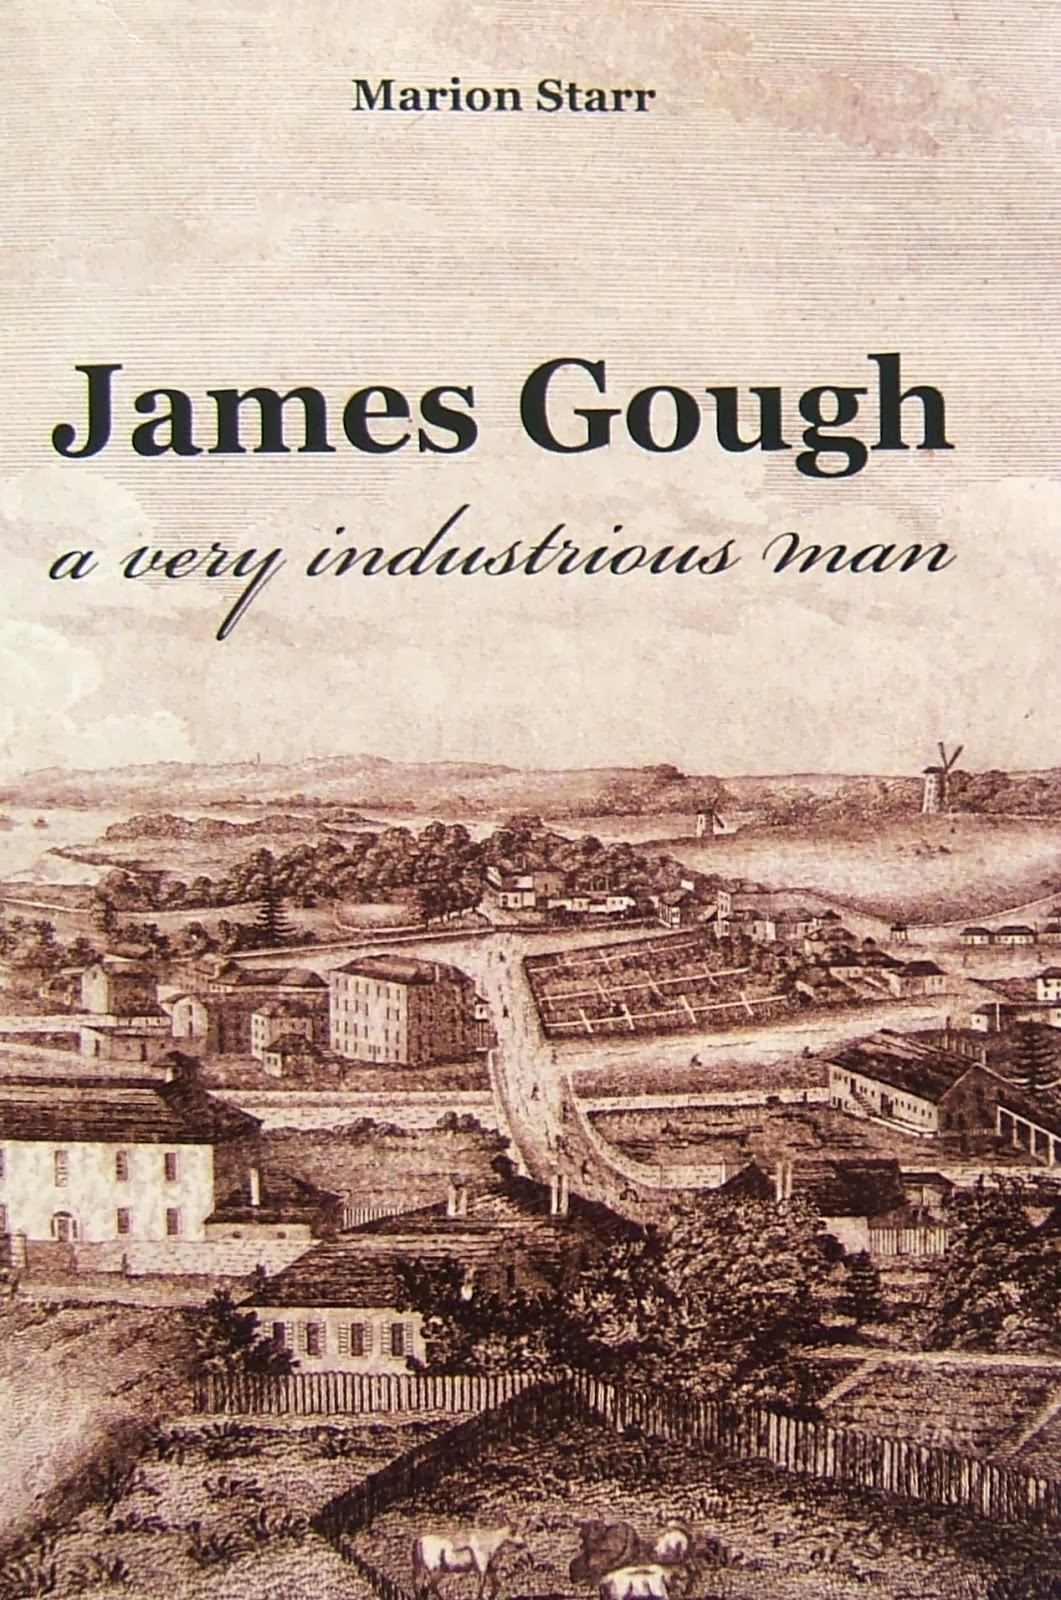 James Gough - the book Click on image for details